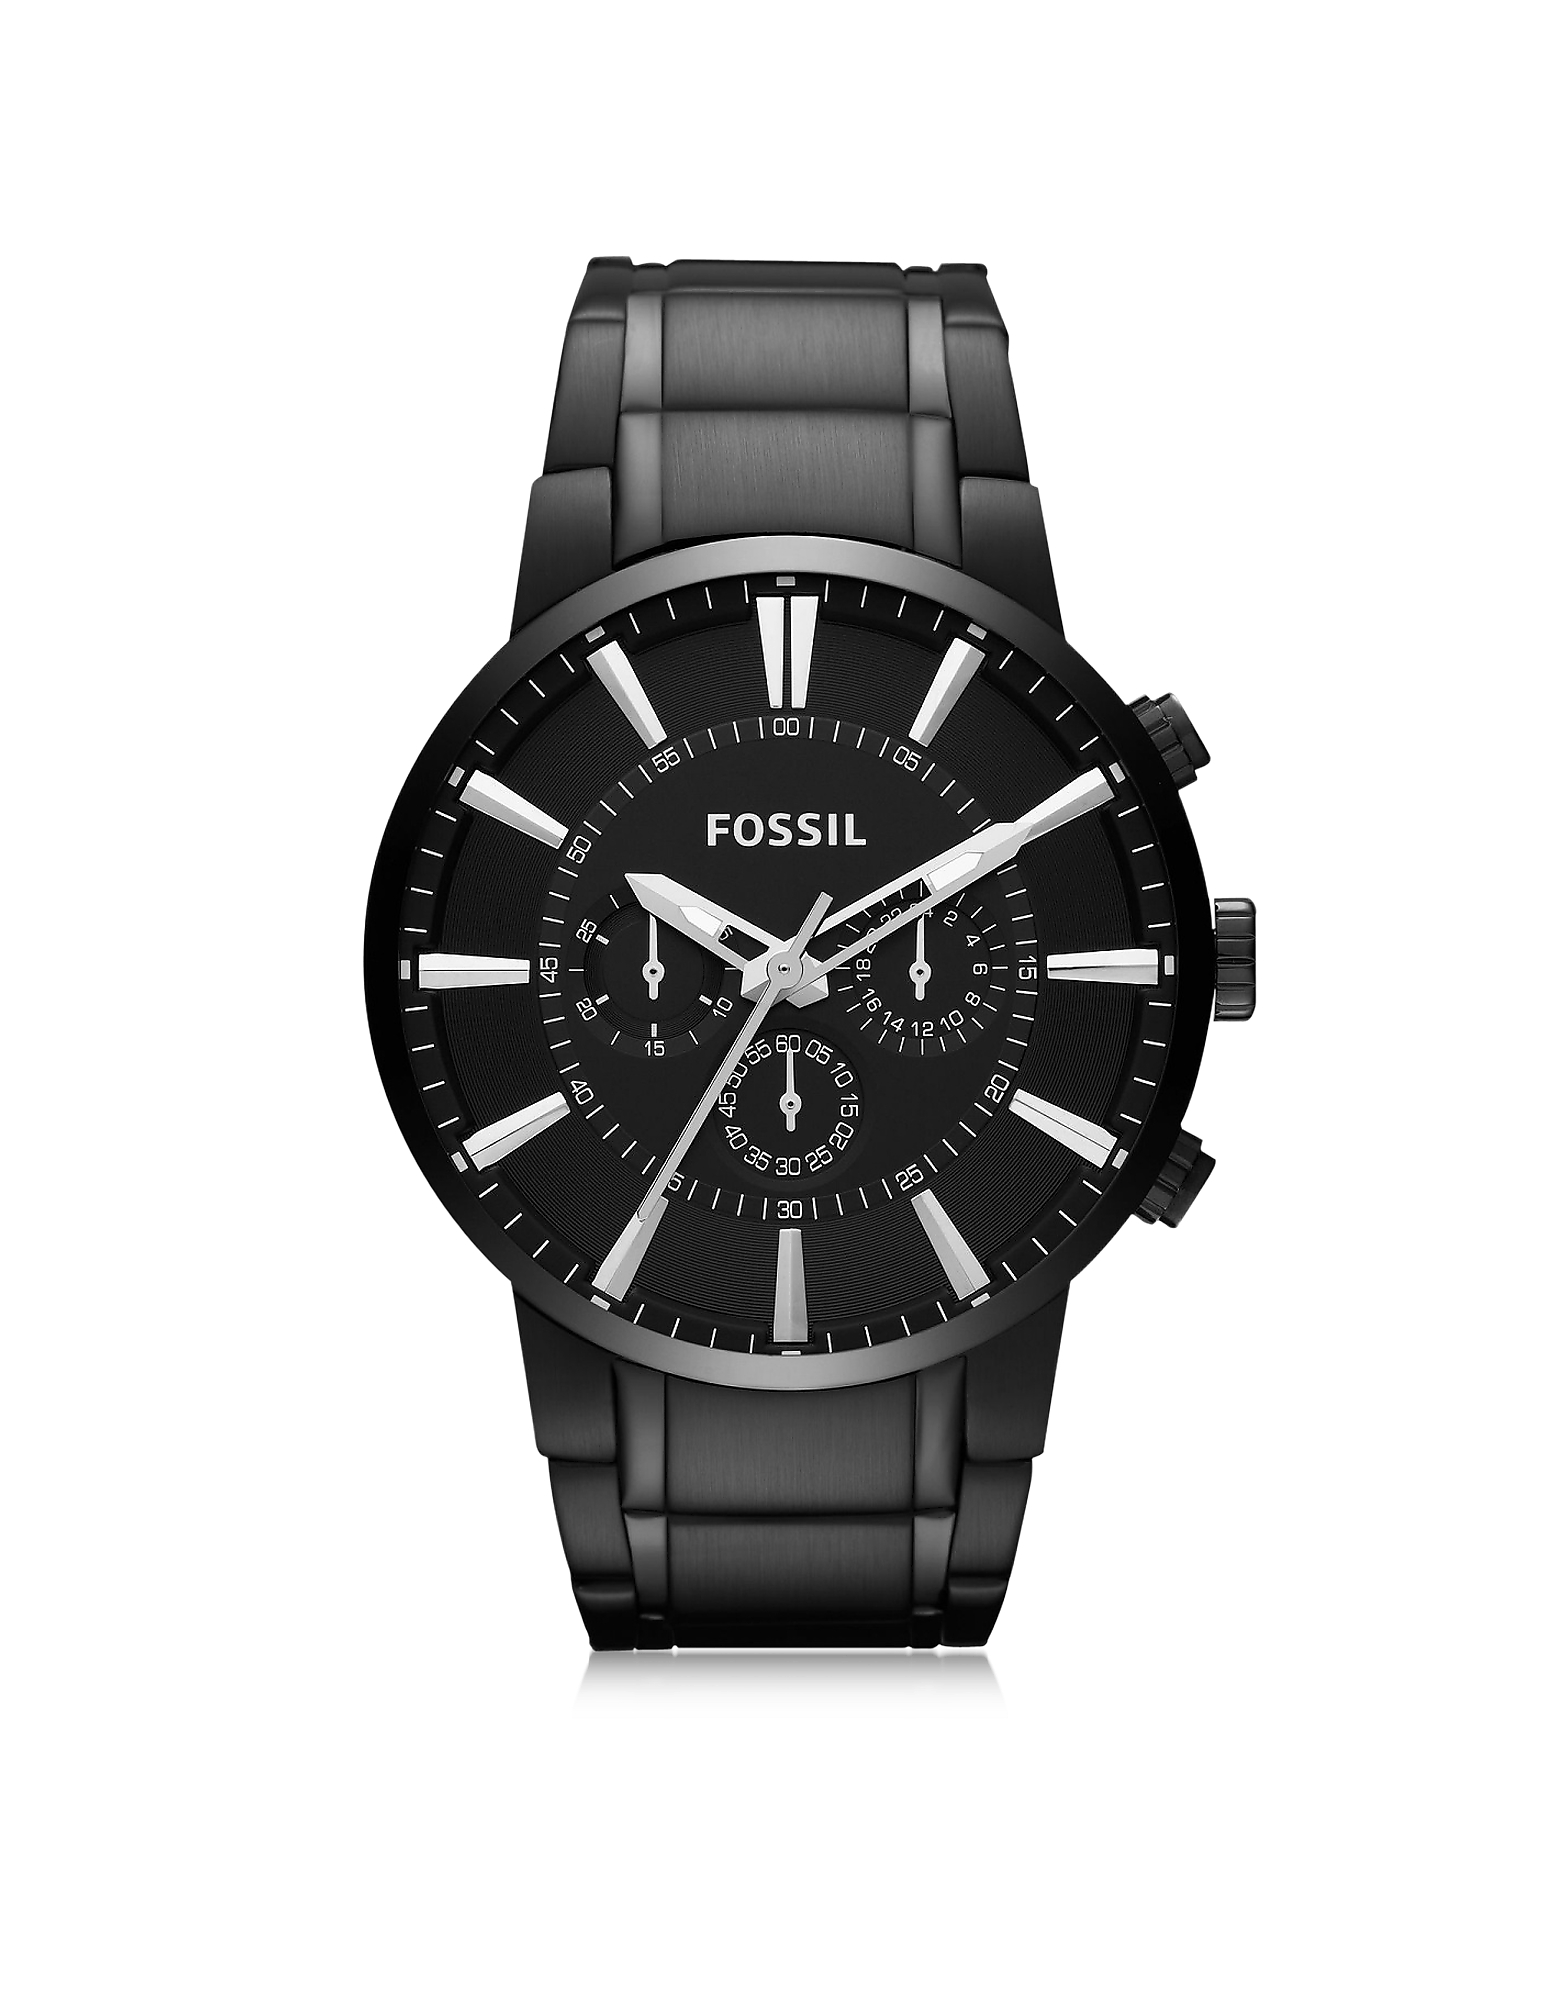 Fossil Men's Watches, Others Black Stainless Steel Men's Chronograph Watch